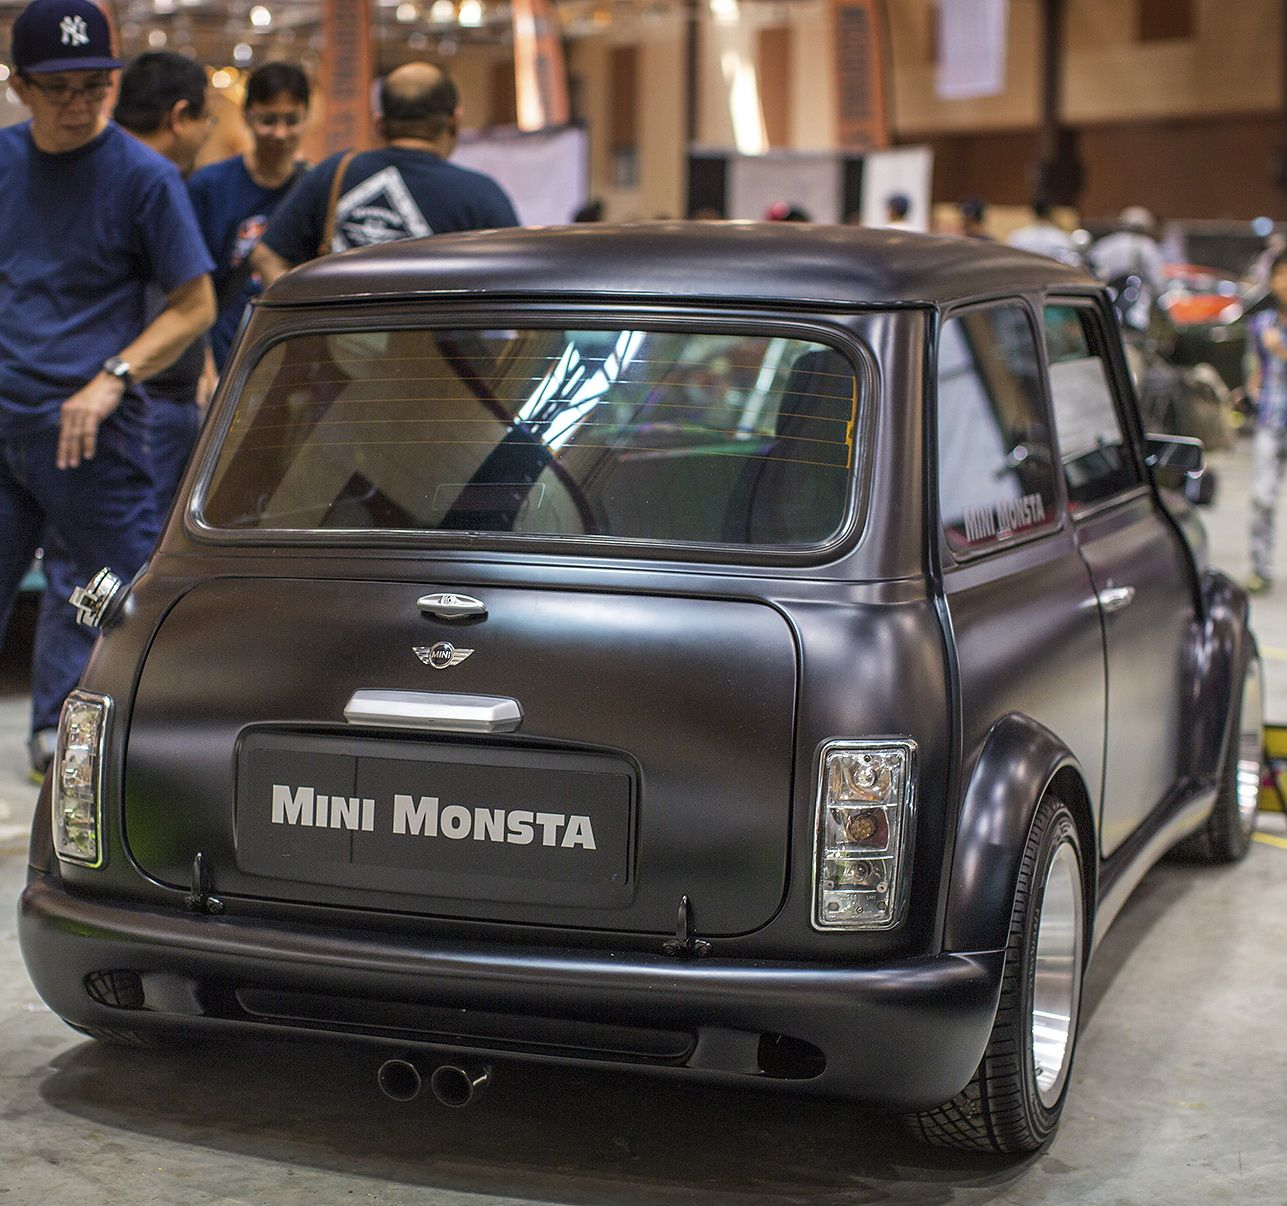 Mini Monsta With Autofashion Designed Majic Bodykit Mii Majic